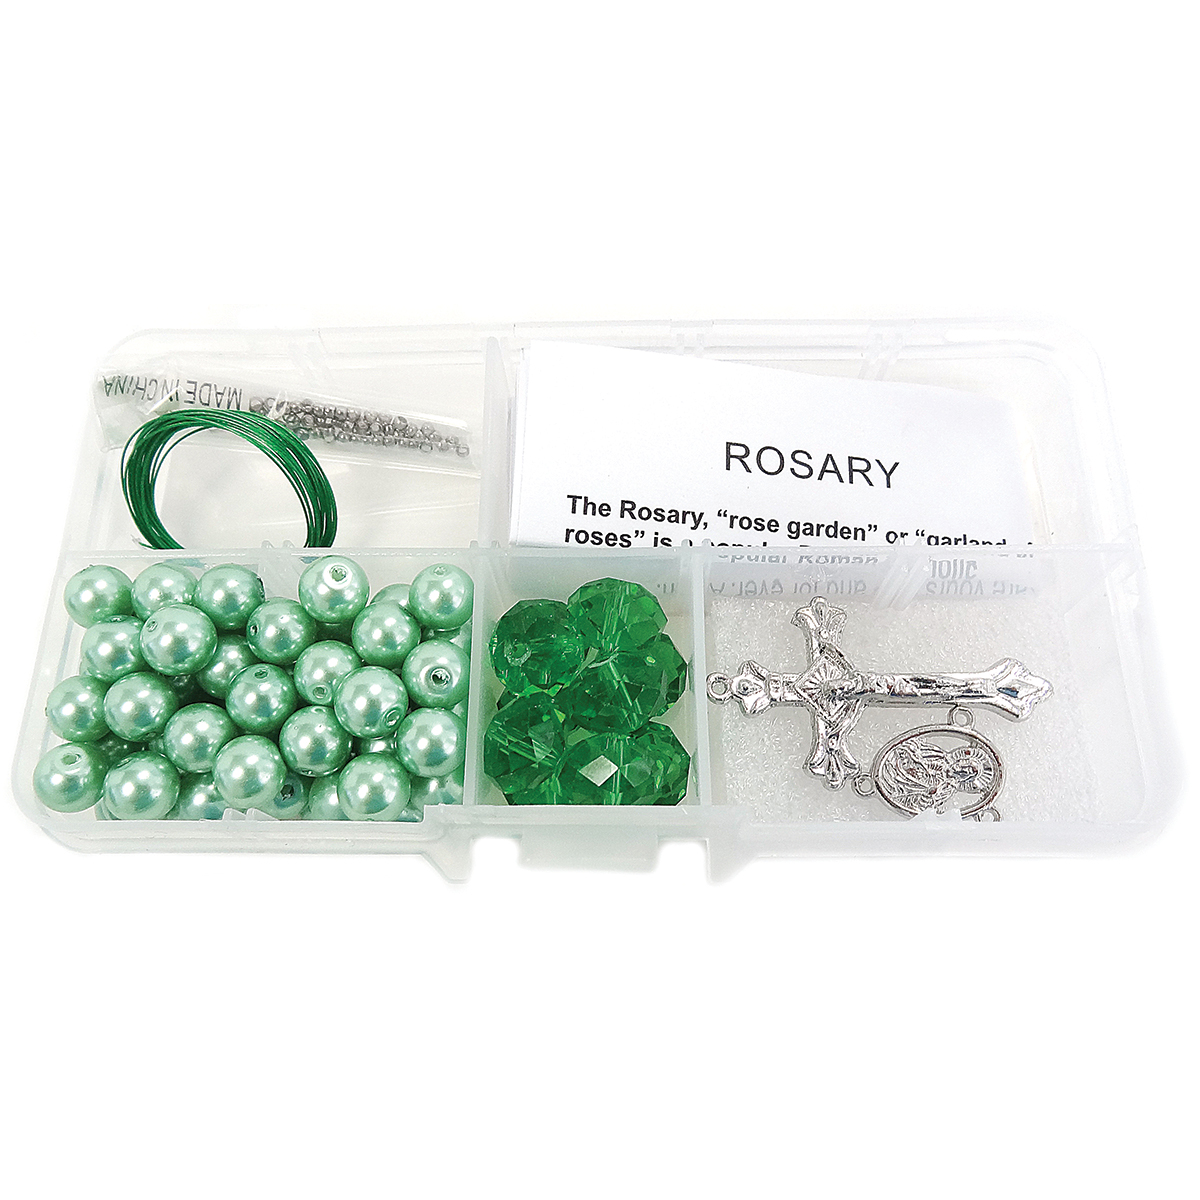 Crystal & Pearl Rosary Bead Kit-Peridot Crystal Beads & Lt. Green Pearls